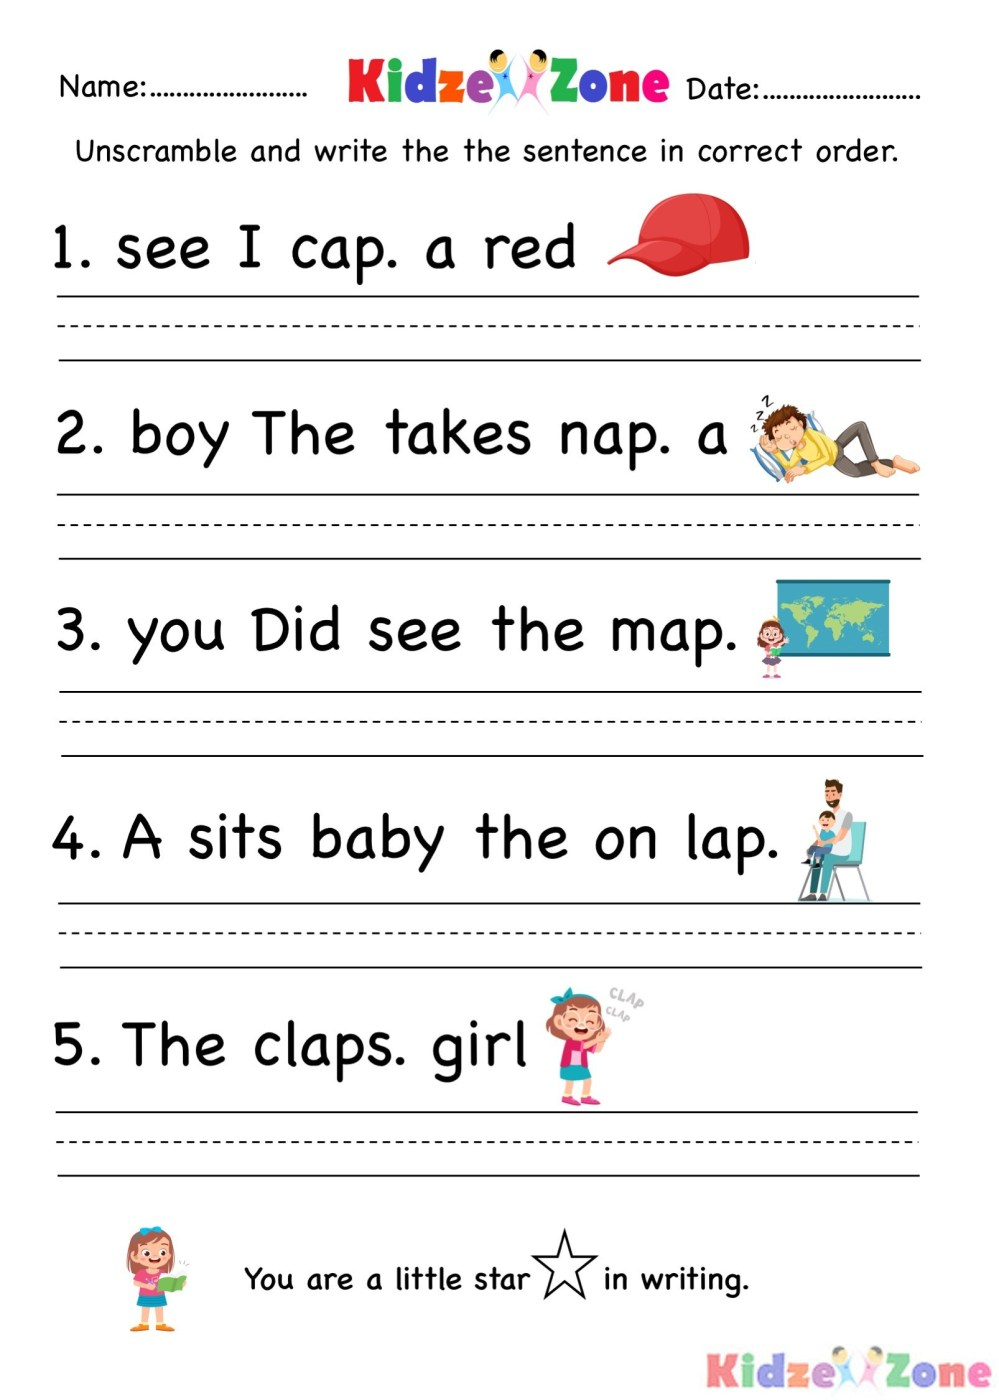 medium resolution of Sentence Correction Worksheet For 1st   Printable Worksheets and Activities  for Teachers